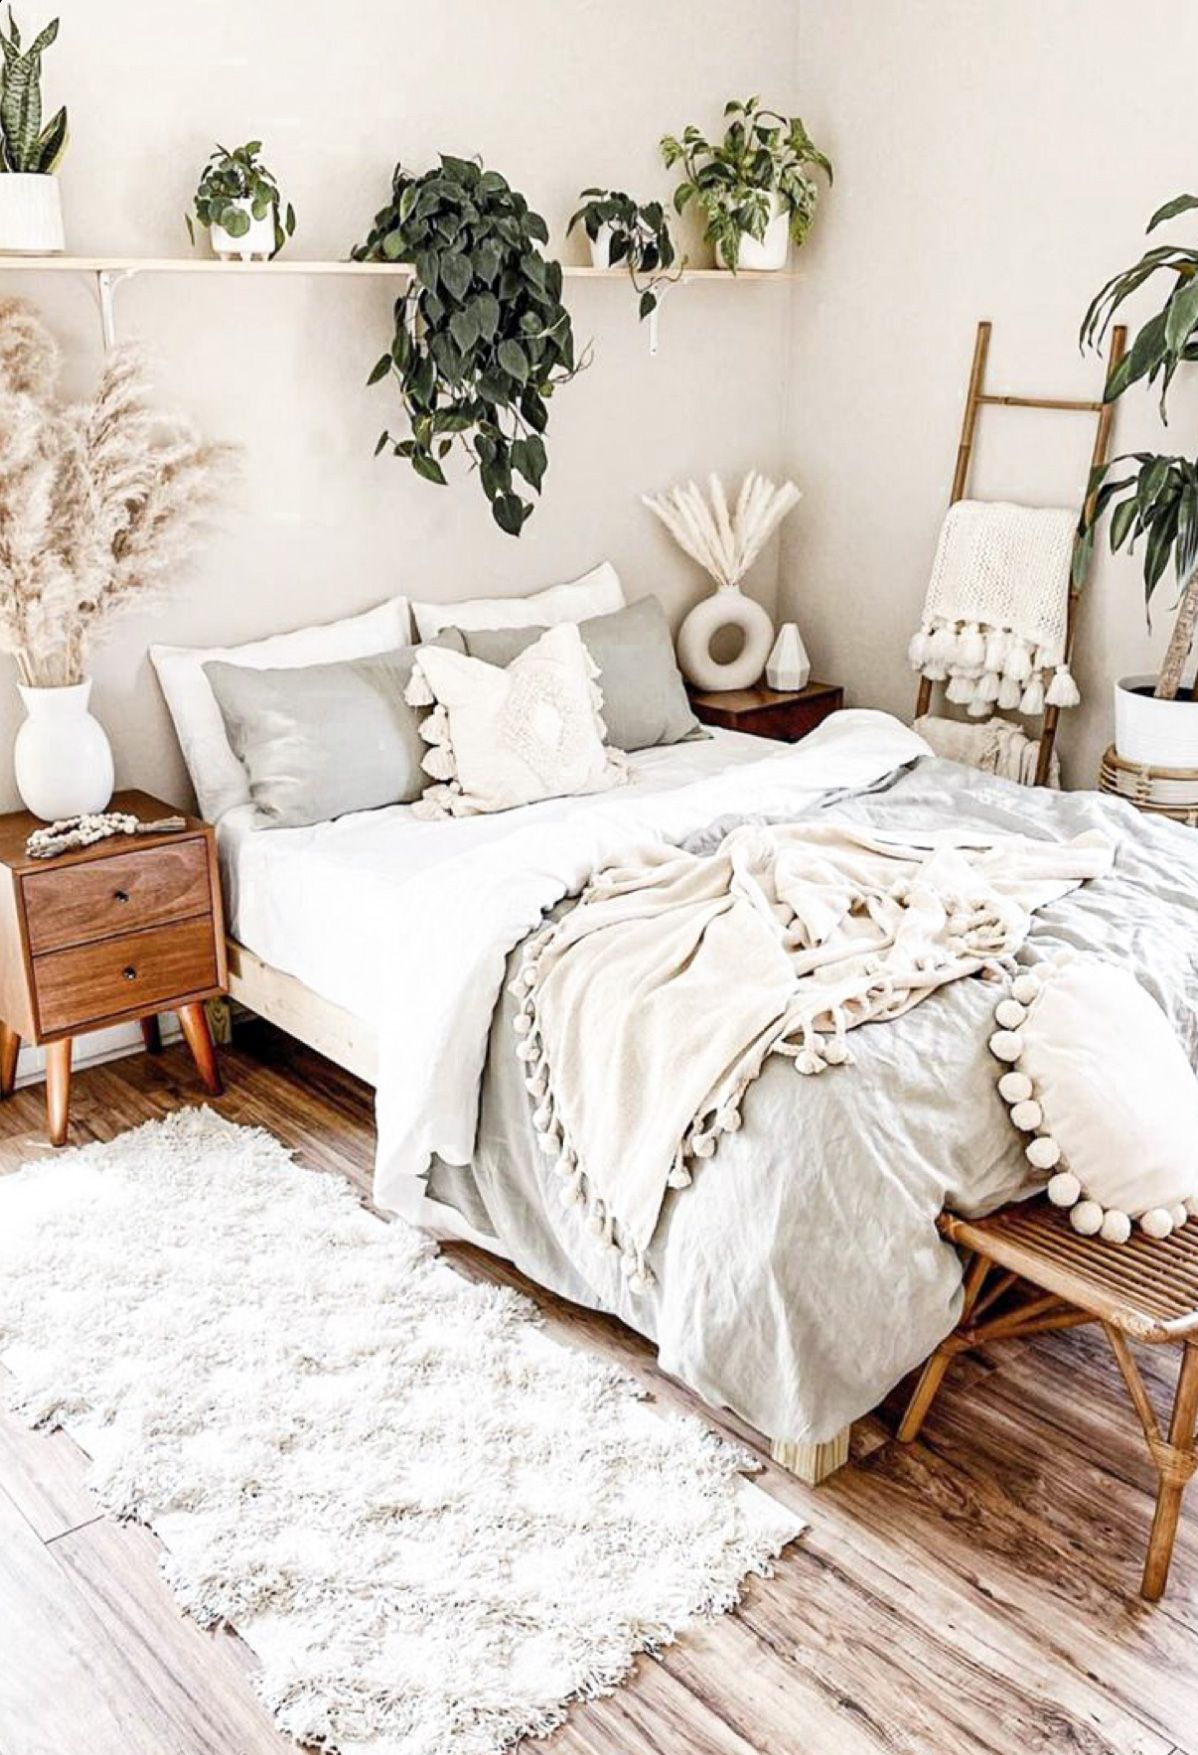 10 Style Tips for Your Boho Bedroom